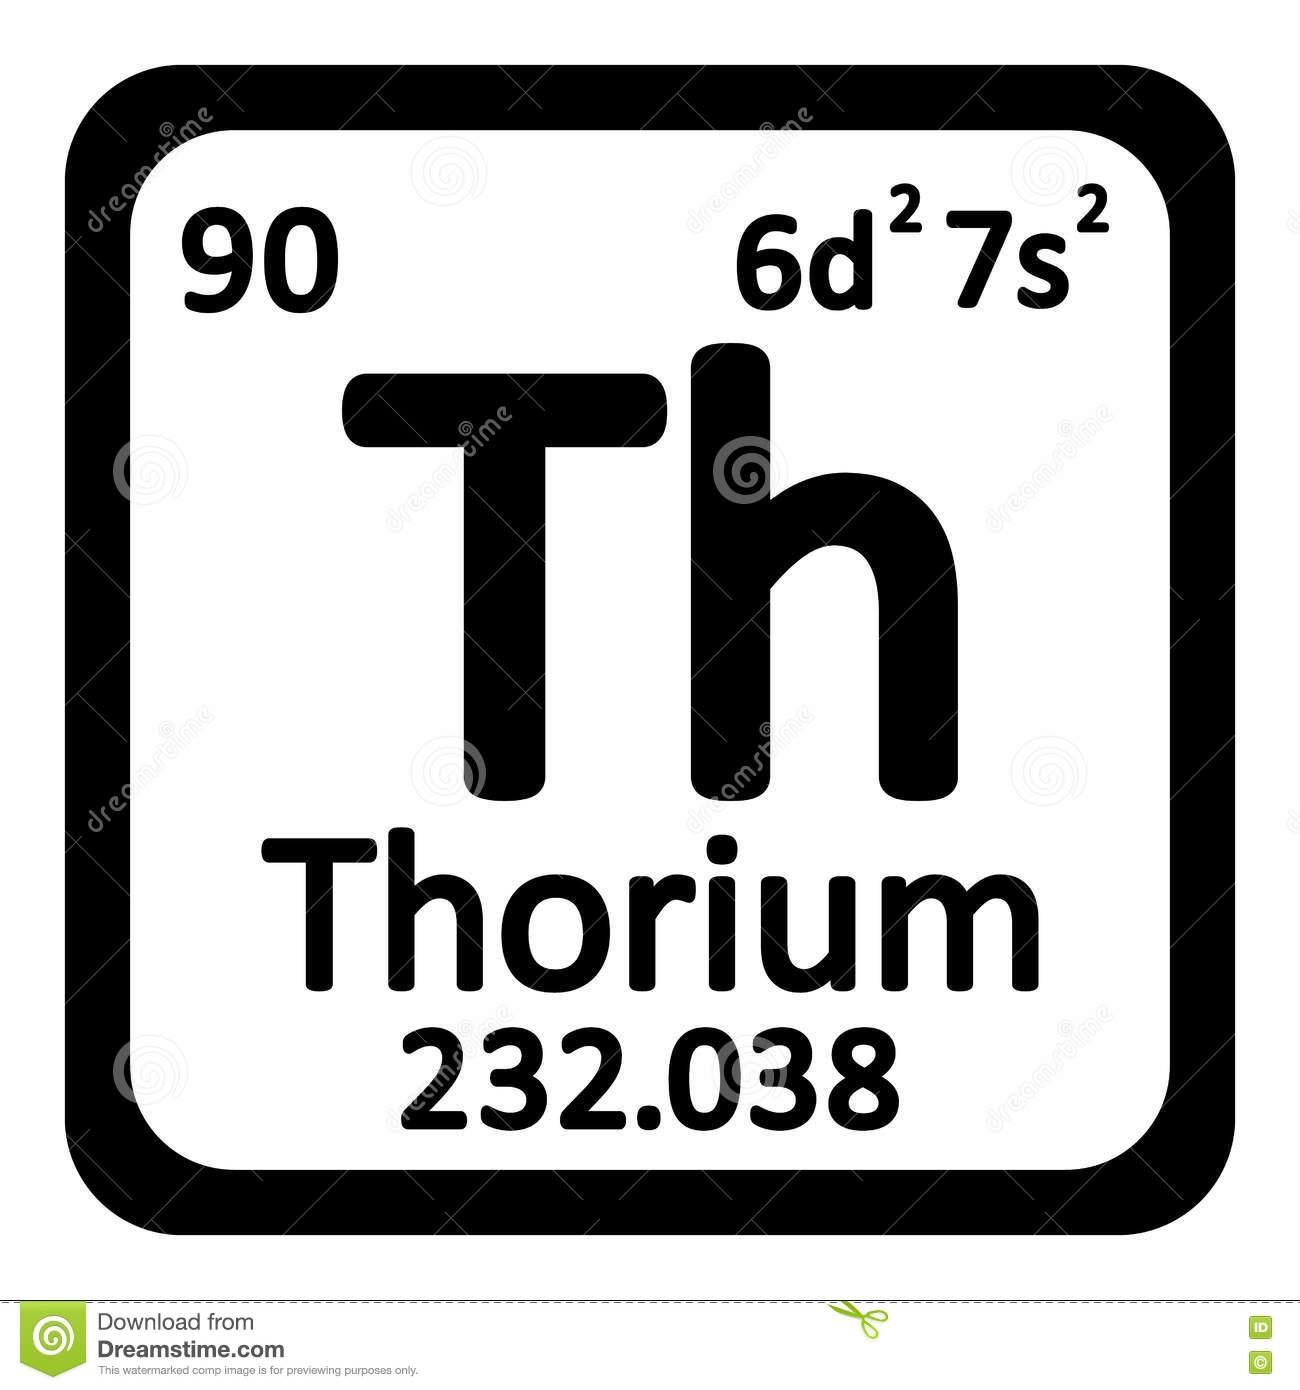 Th element periodic table gallery periodic table images thorium periodic table image collections periodic table images periodic table element thorium icon stock illustration image gamestrikefo Image collections